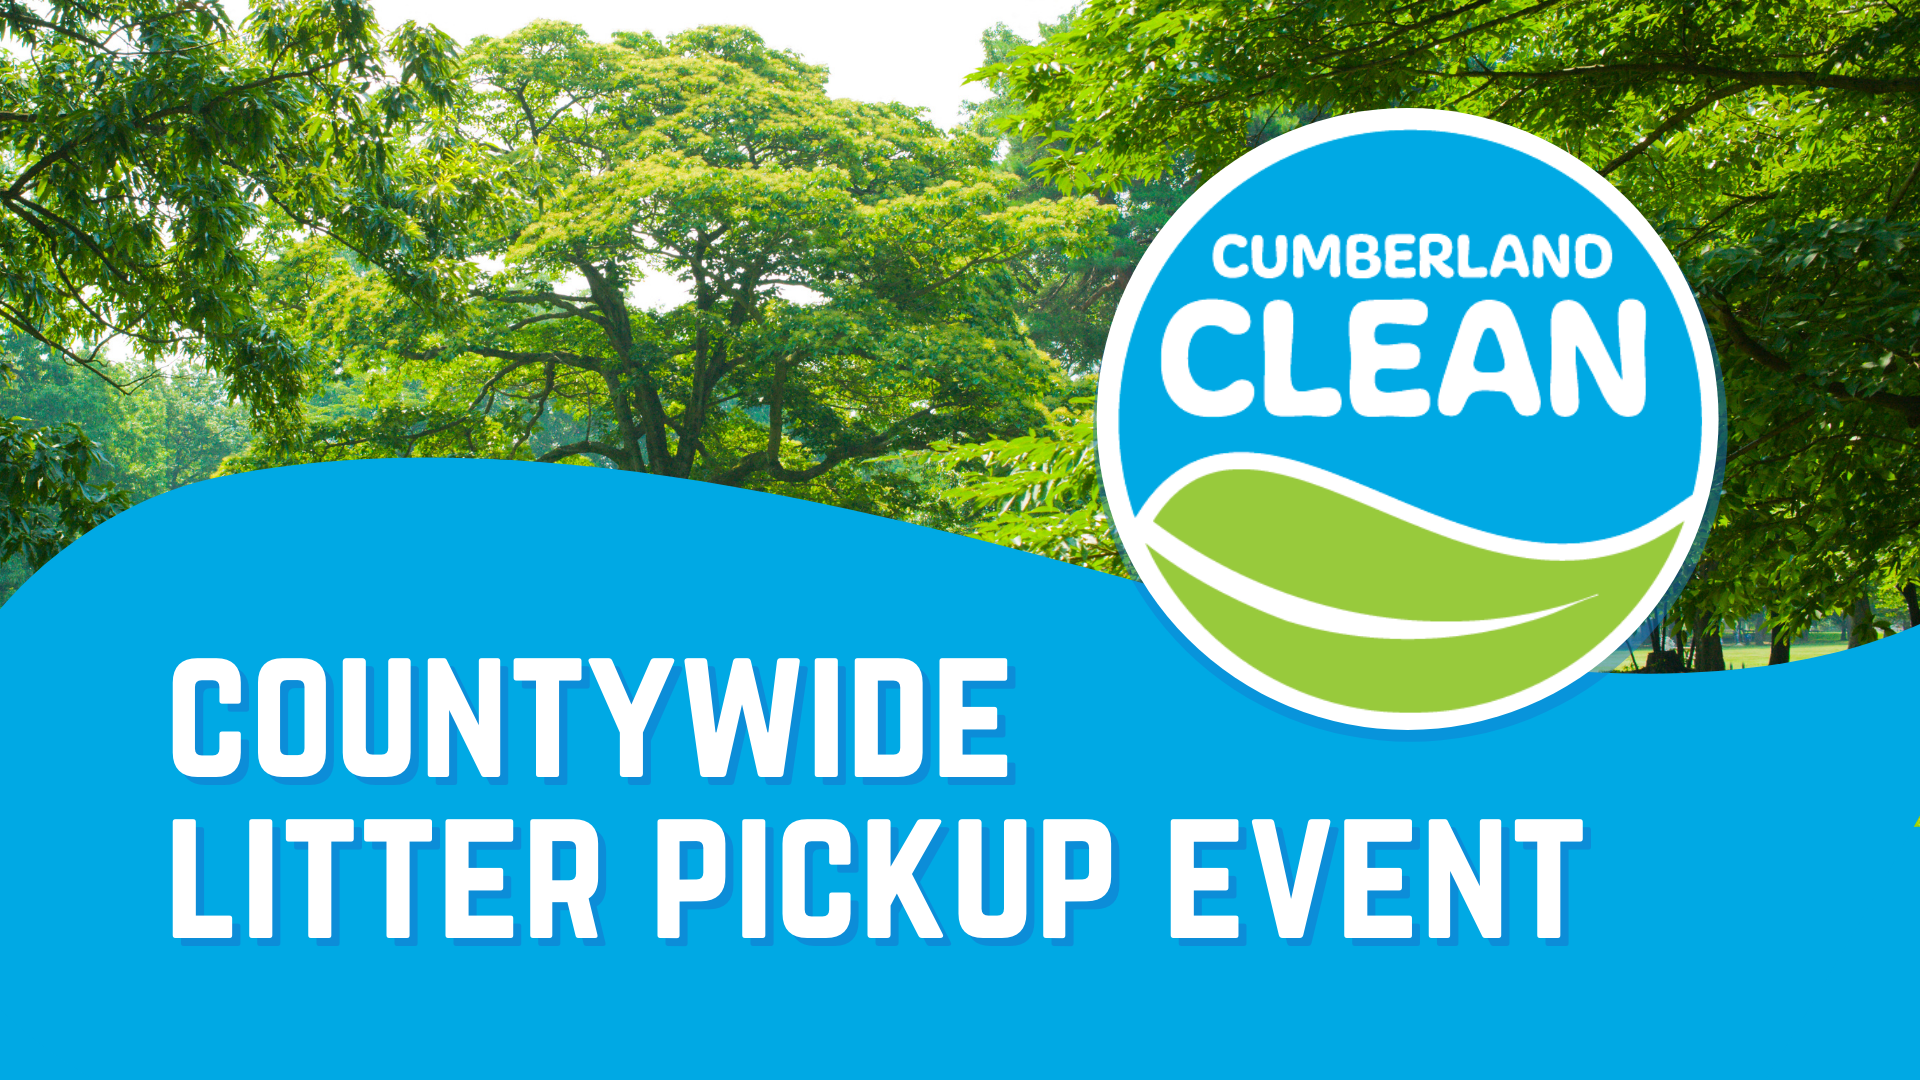 cumberland clean countywide litter pickup event